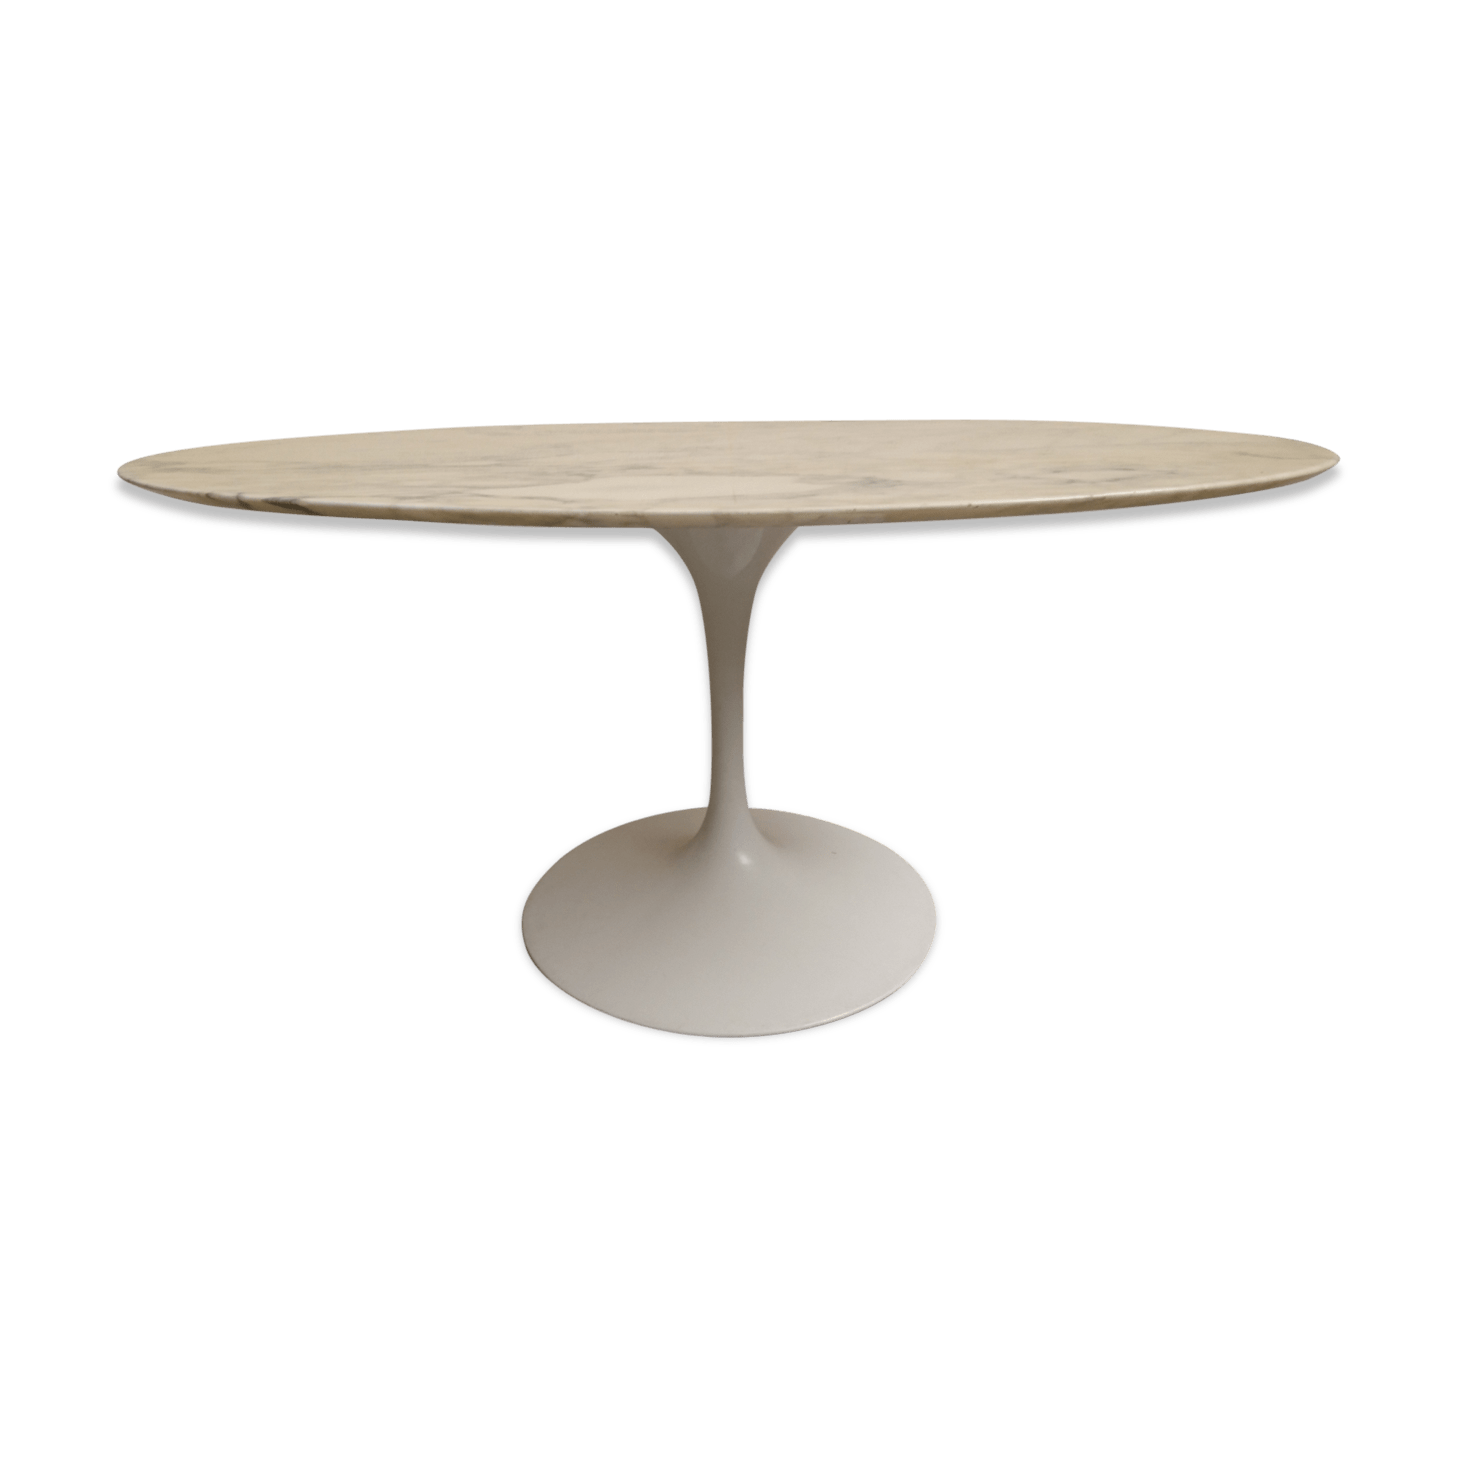 Table Marbre Knoll Table Knoll Marbre Trendy Gae Aulenti Knoll Diteur Table